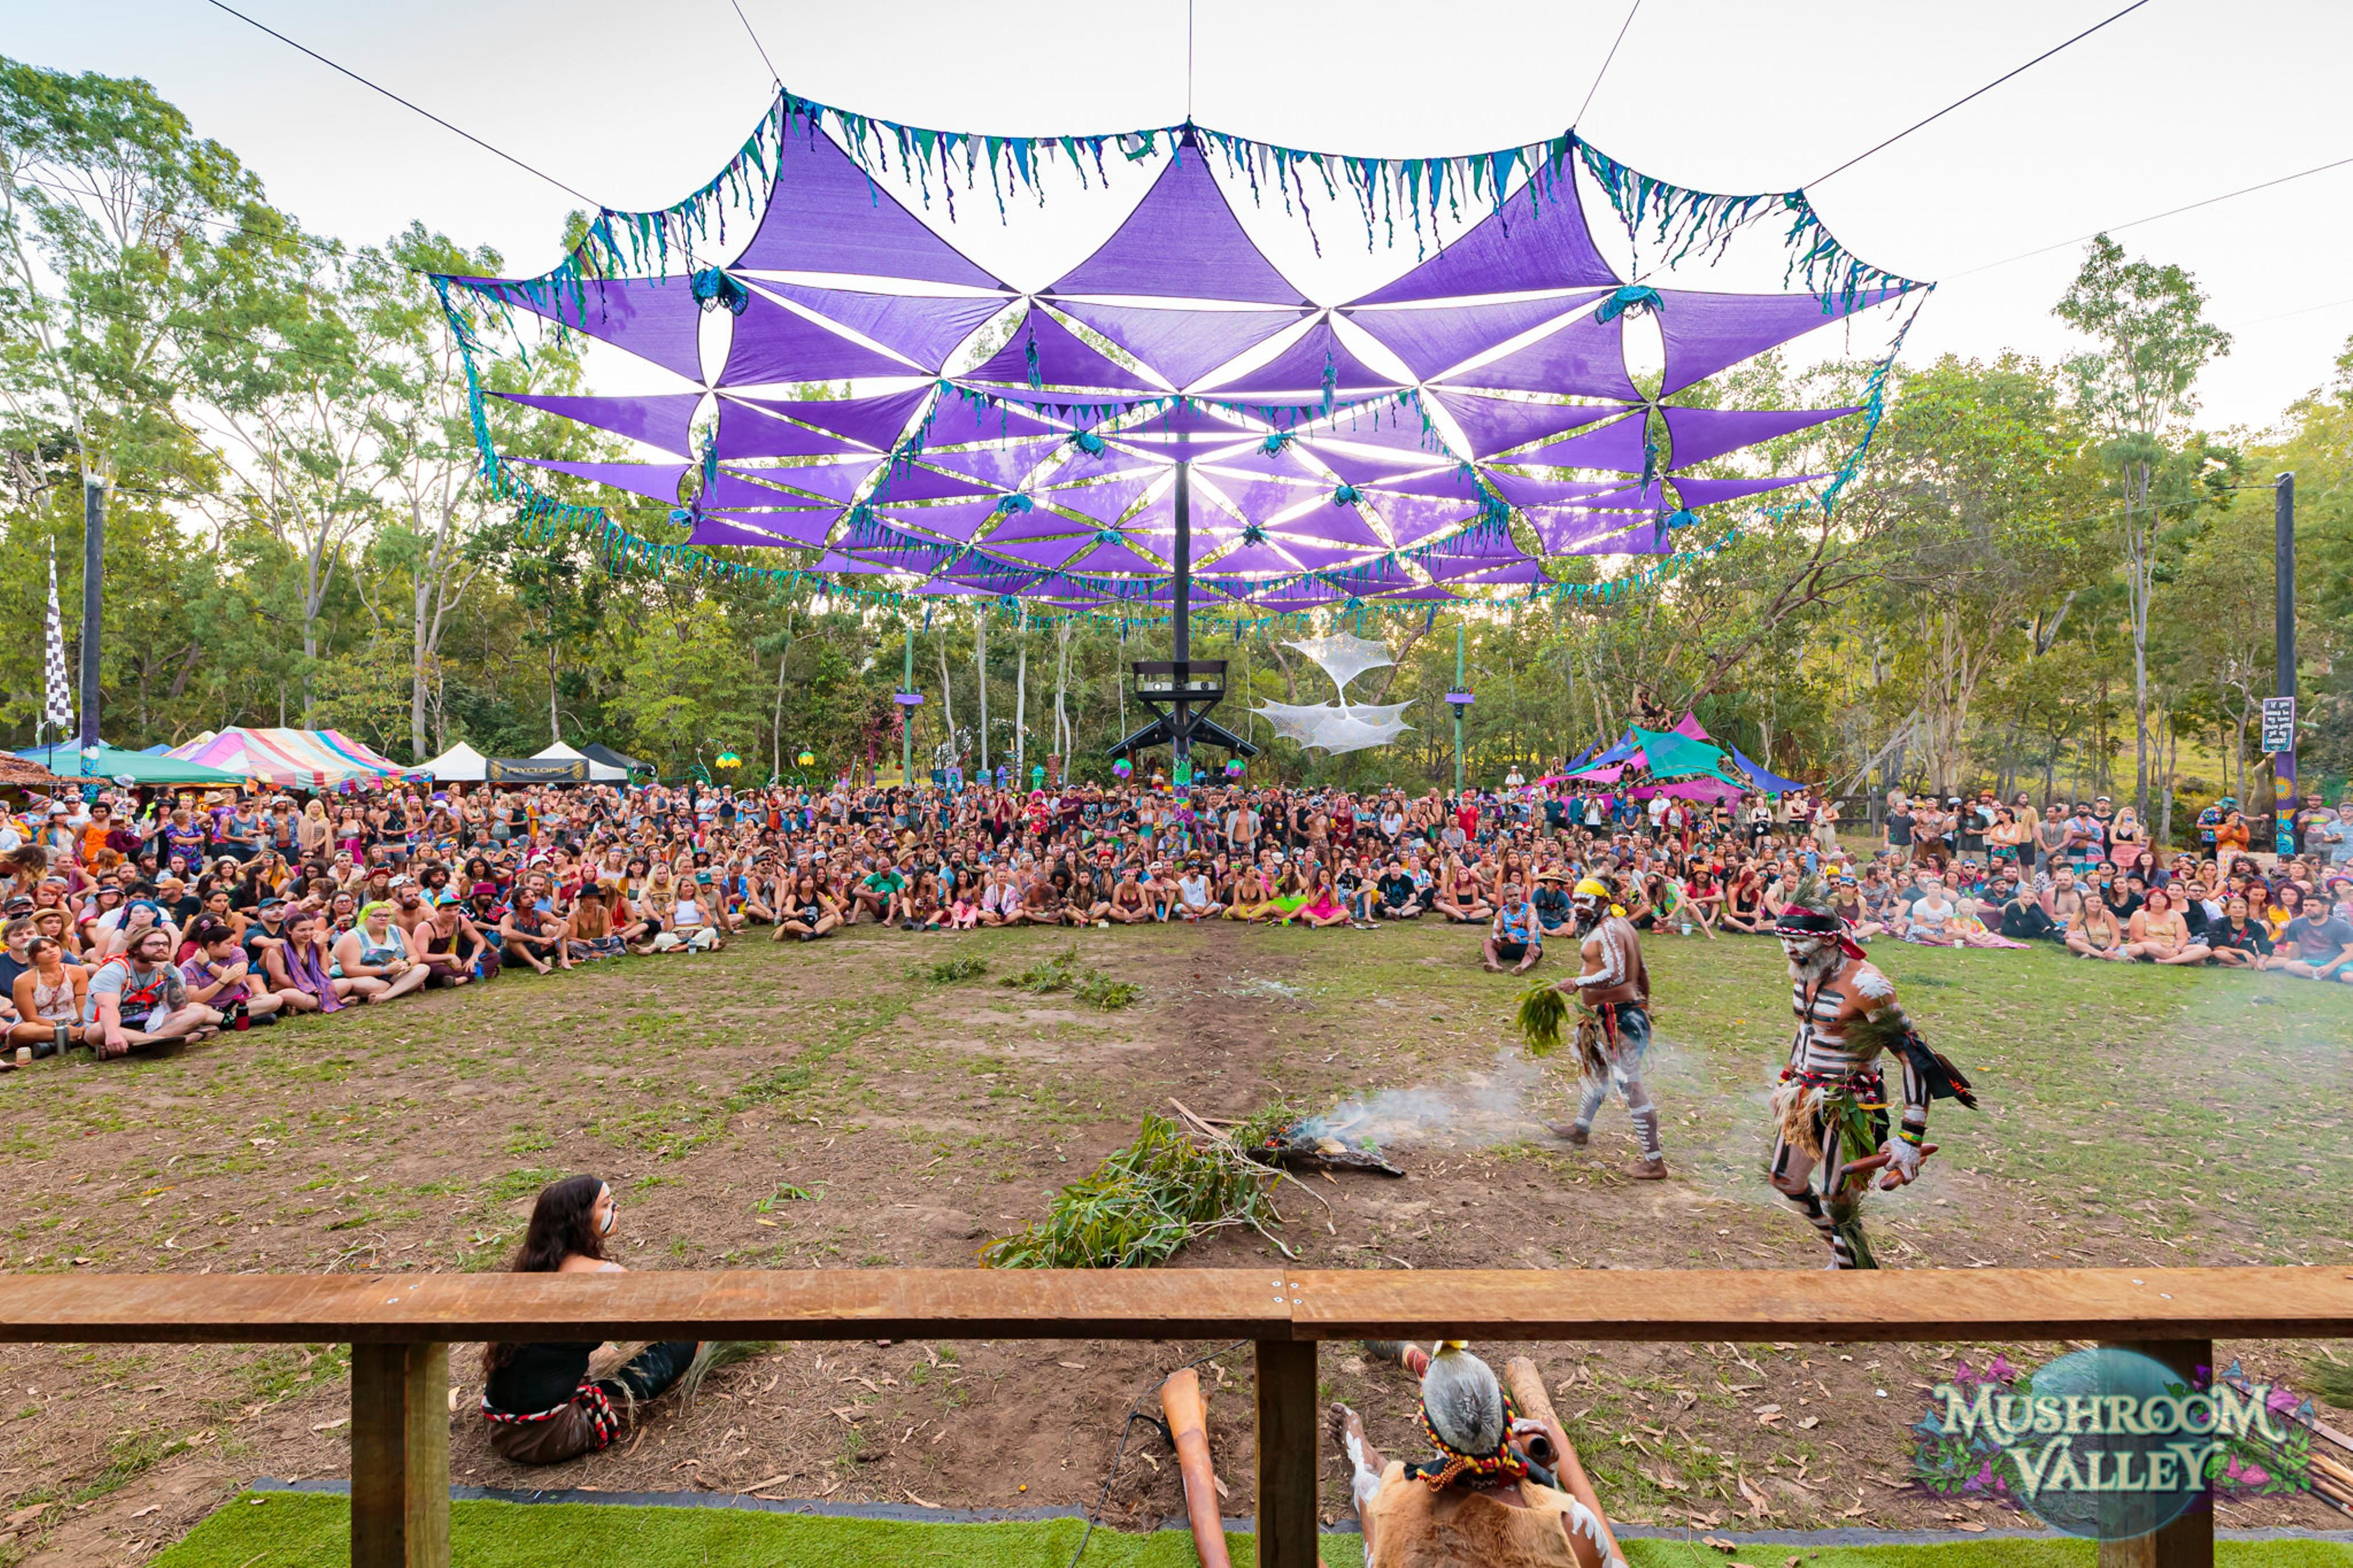 Mushroom Valley Festival - Accommodation Melbourne